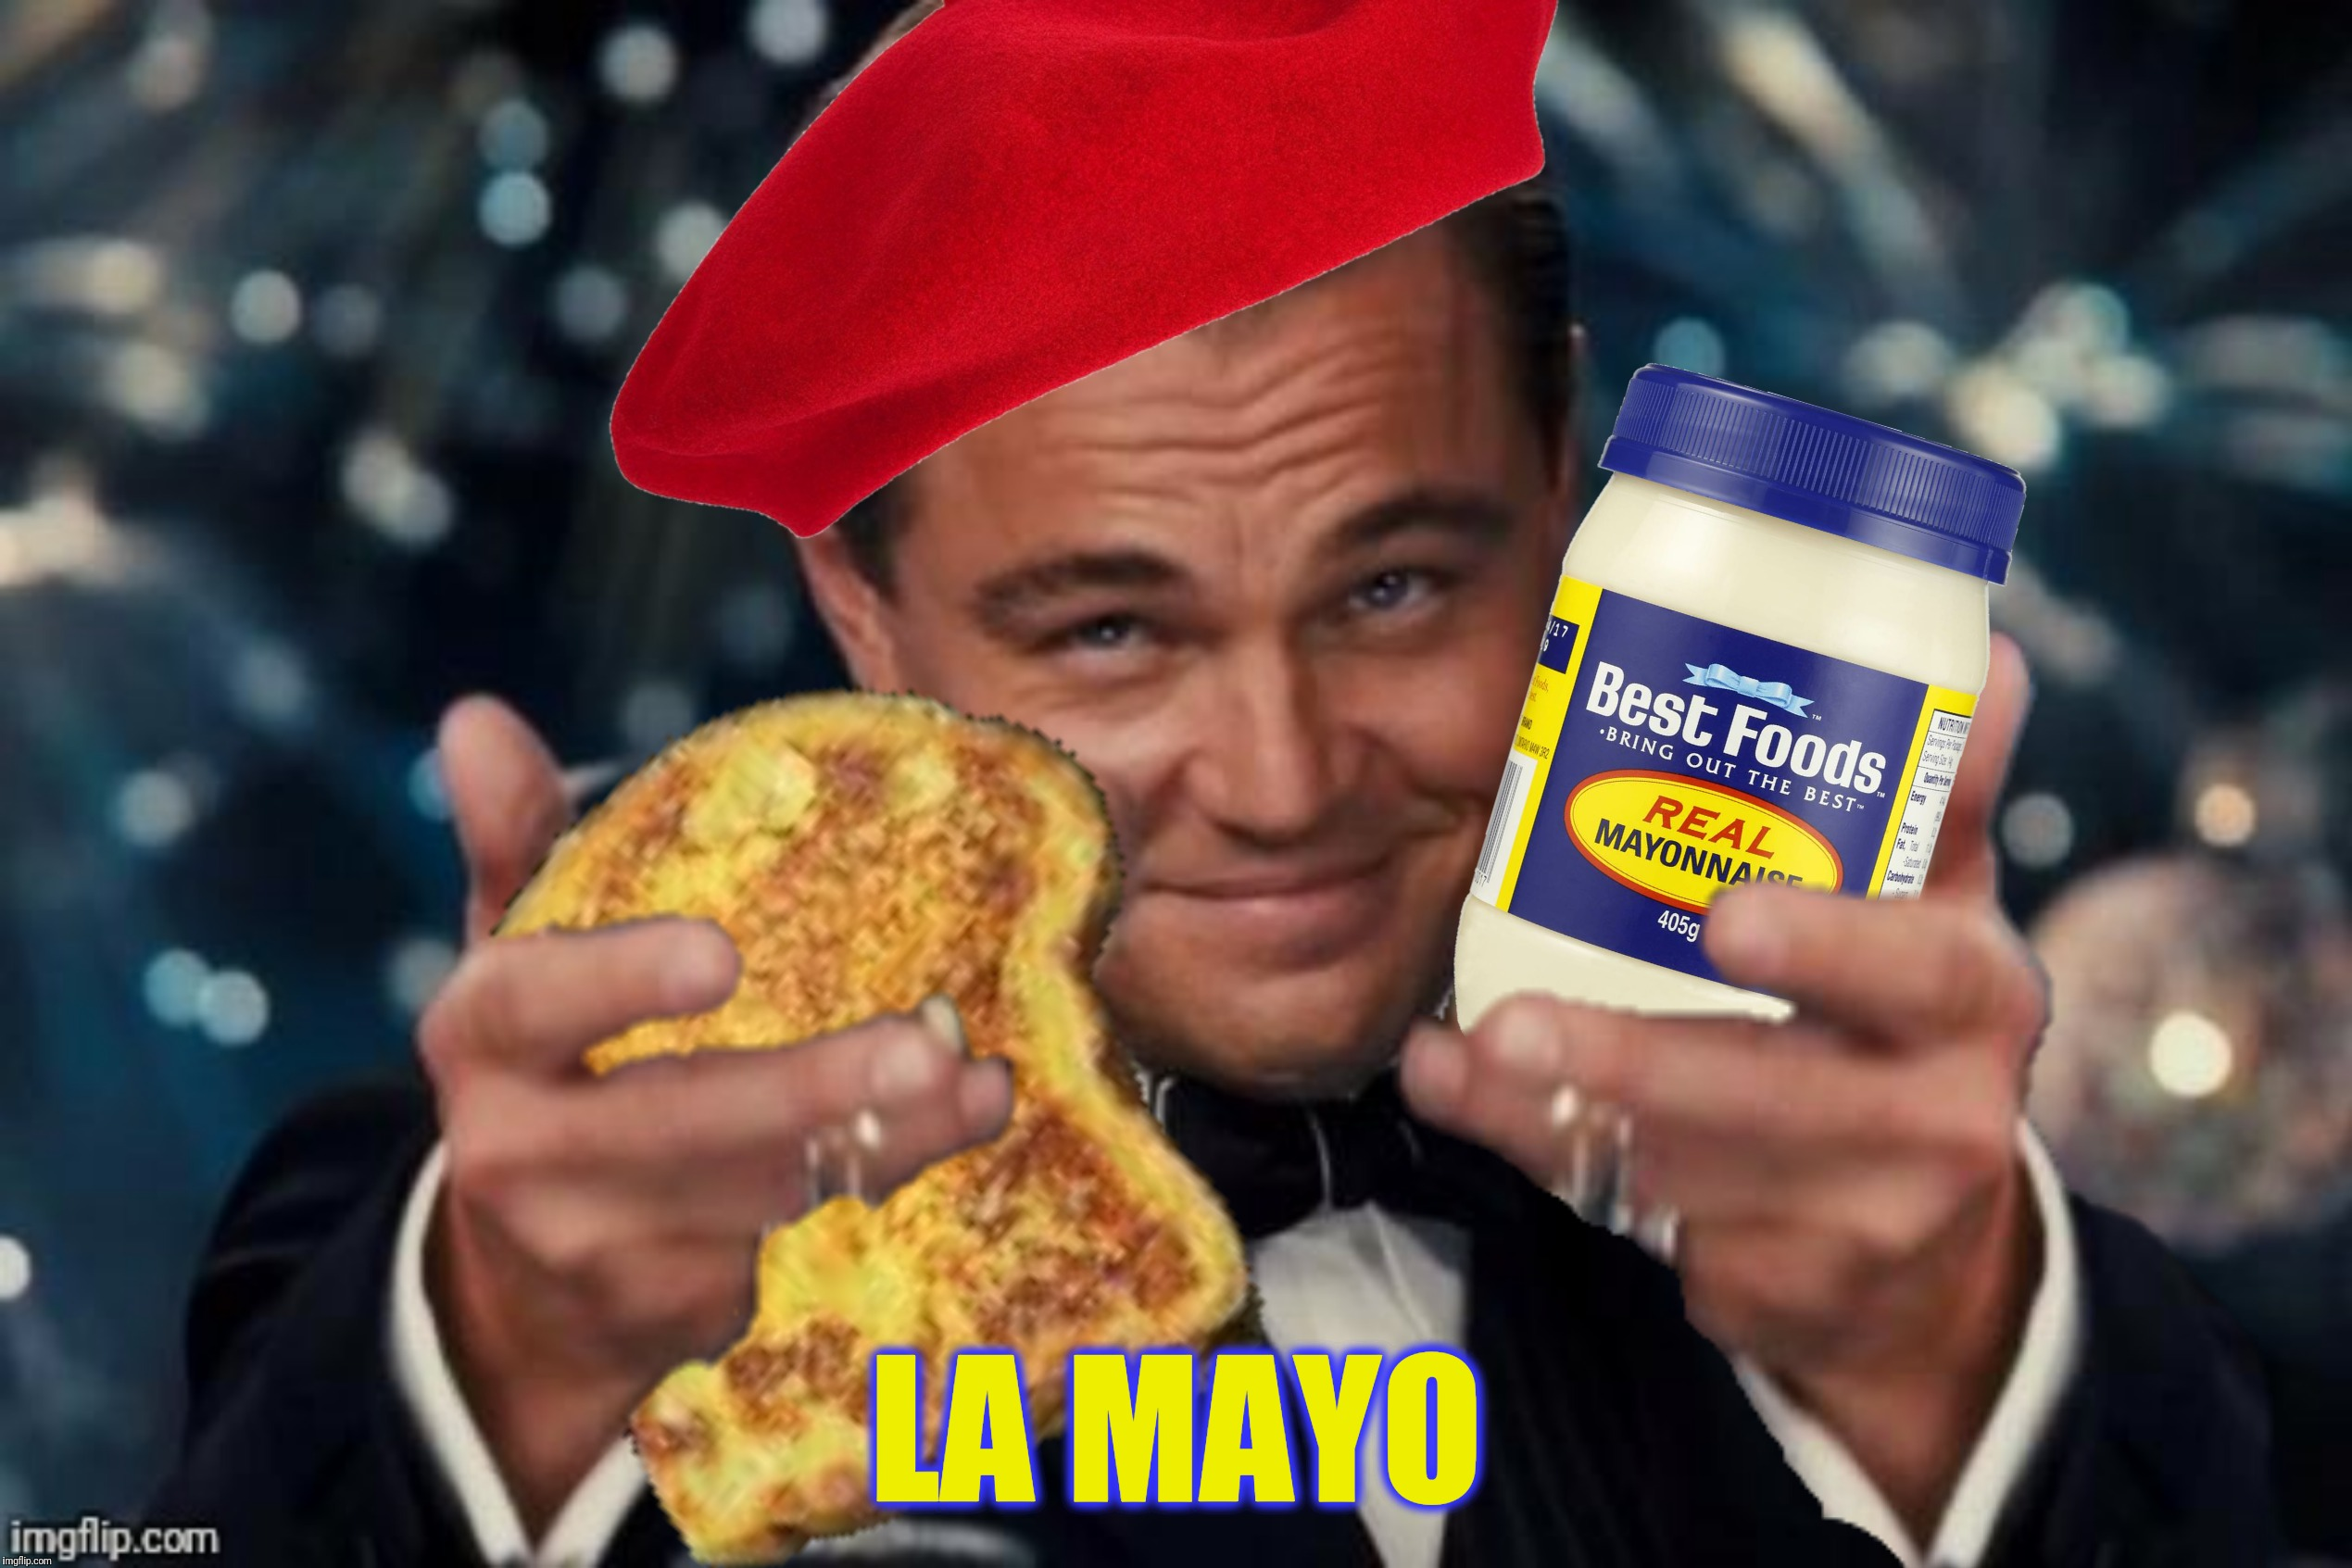 LA MAYO | made w/ Imgflip meme maker